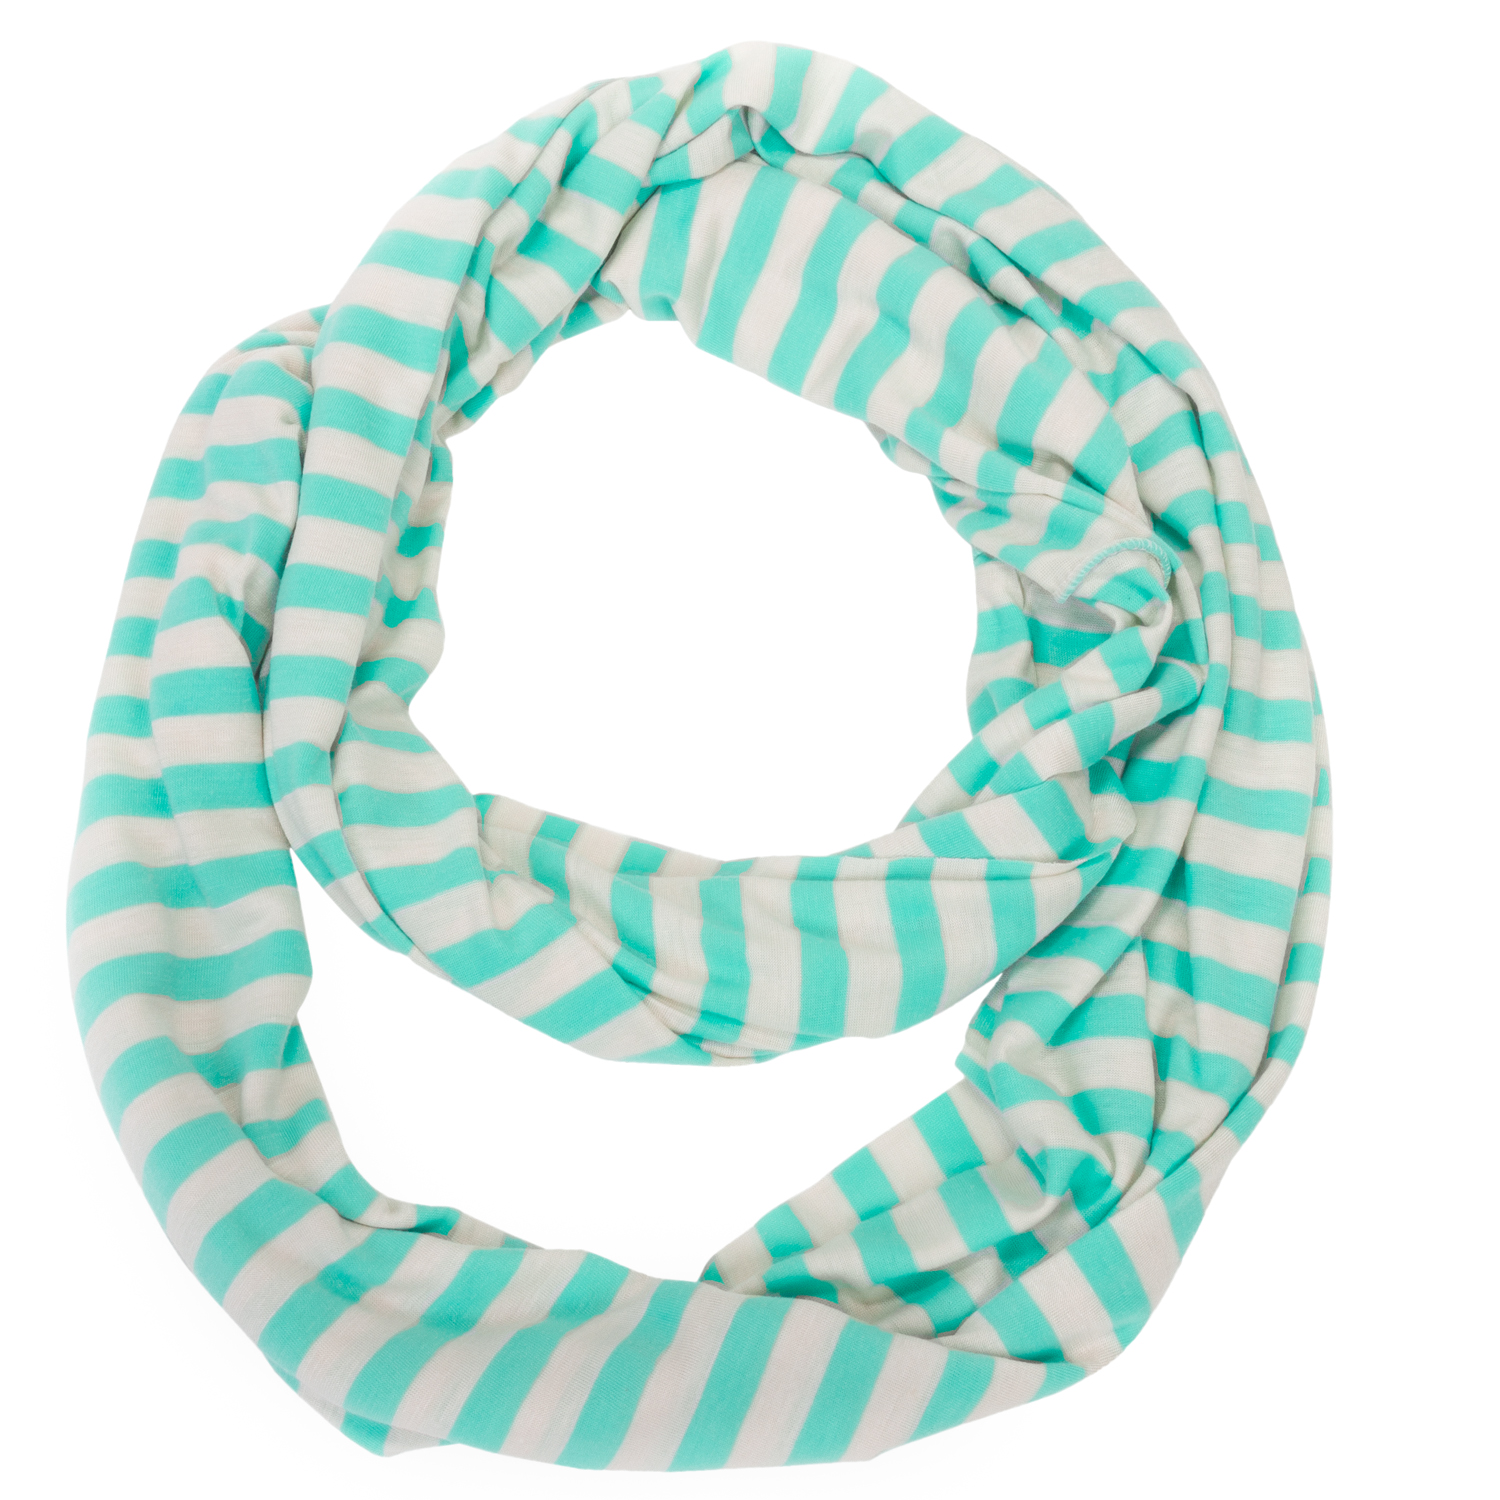 Women's Nautical Cape May Stripe Infinity Circle Scarf Lightweight Wrap -PCW6004